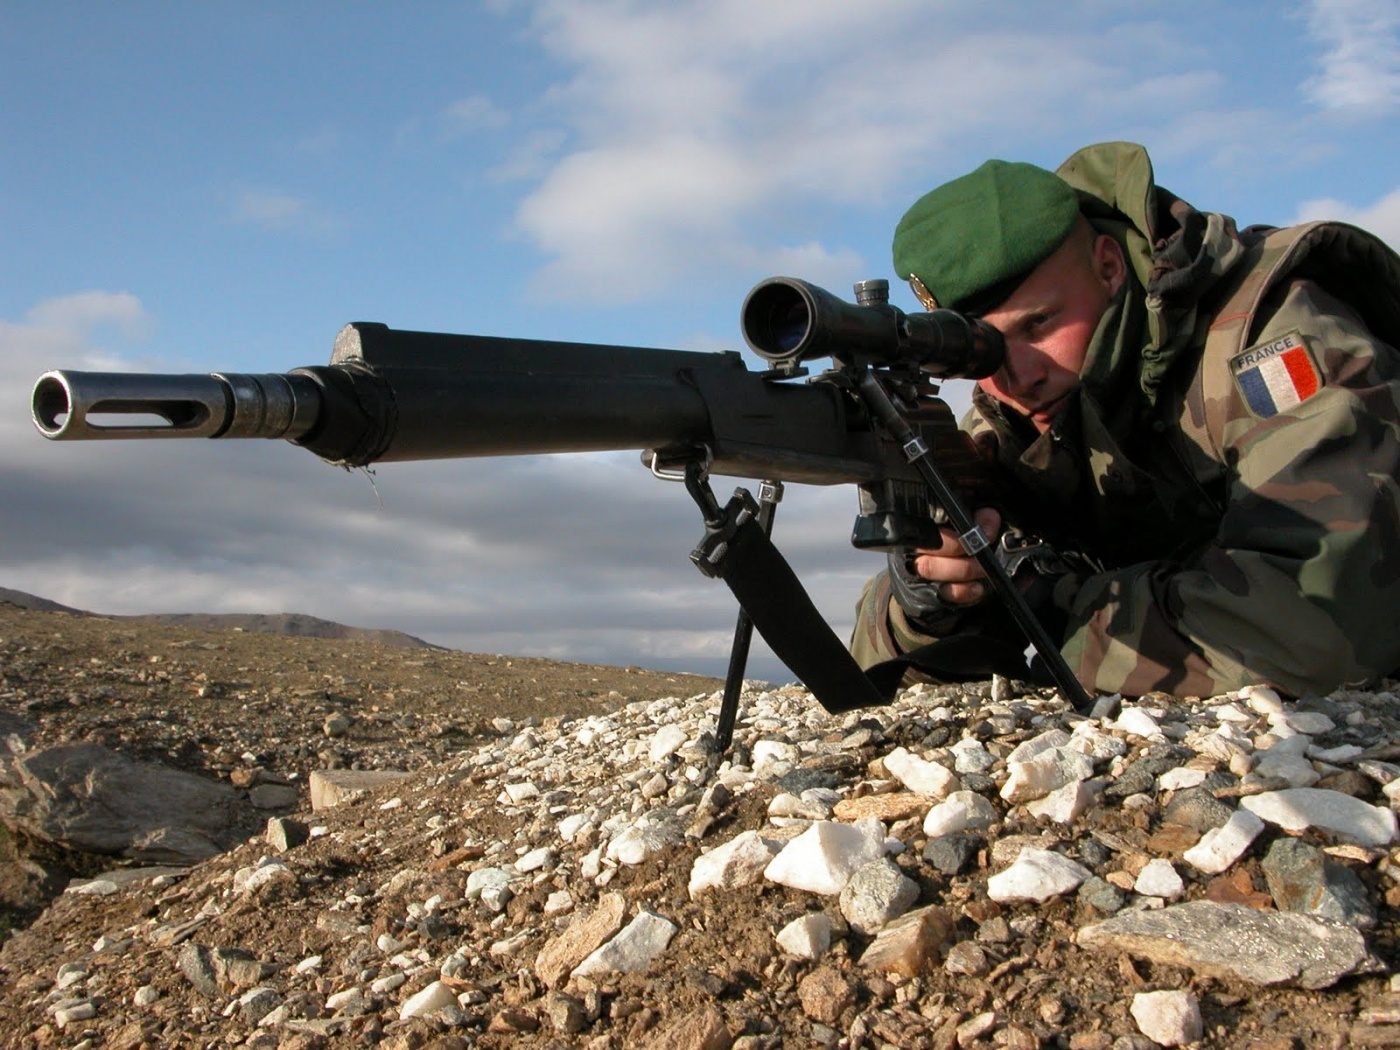 French Foreign Legion Sniper Rifle